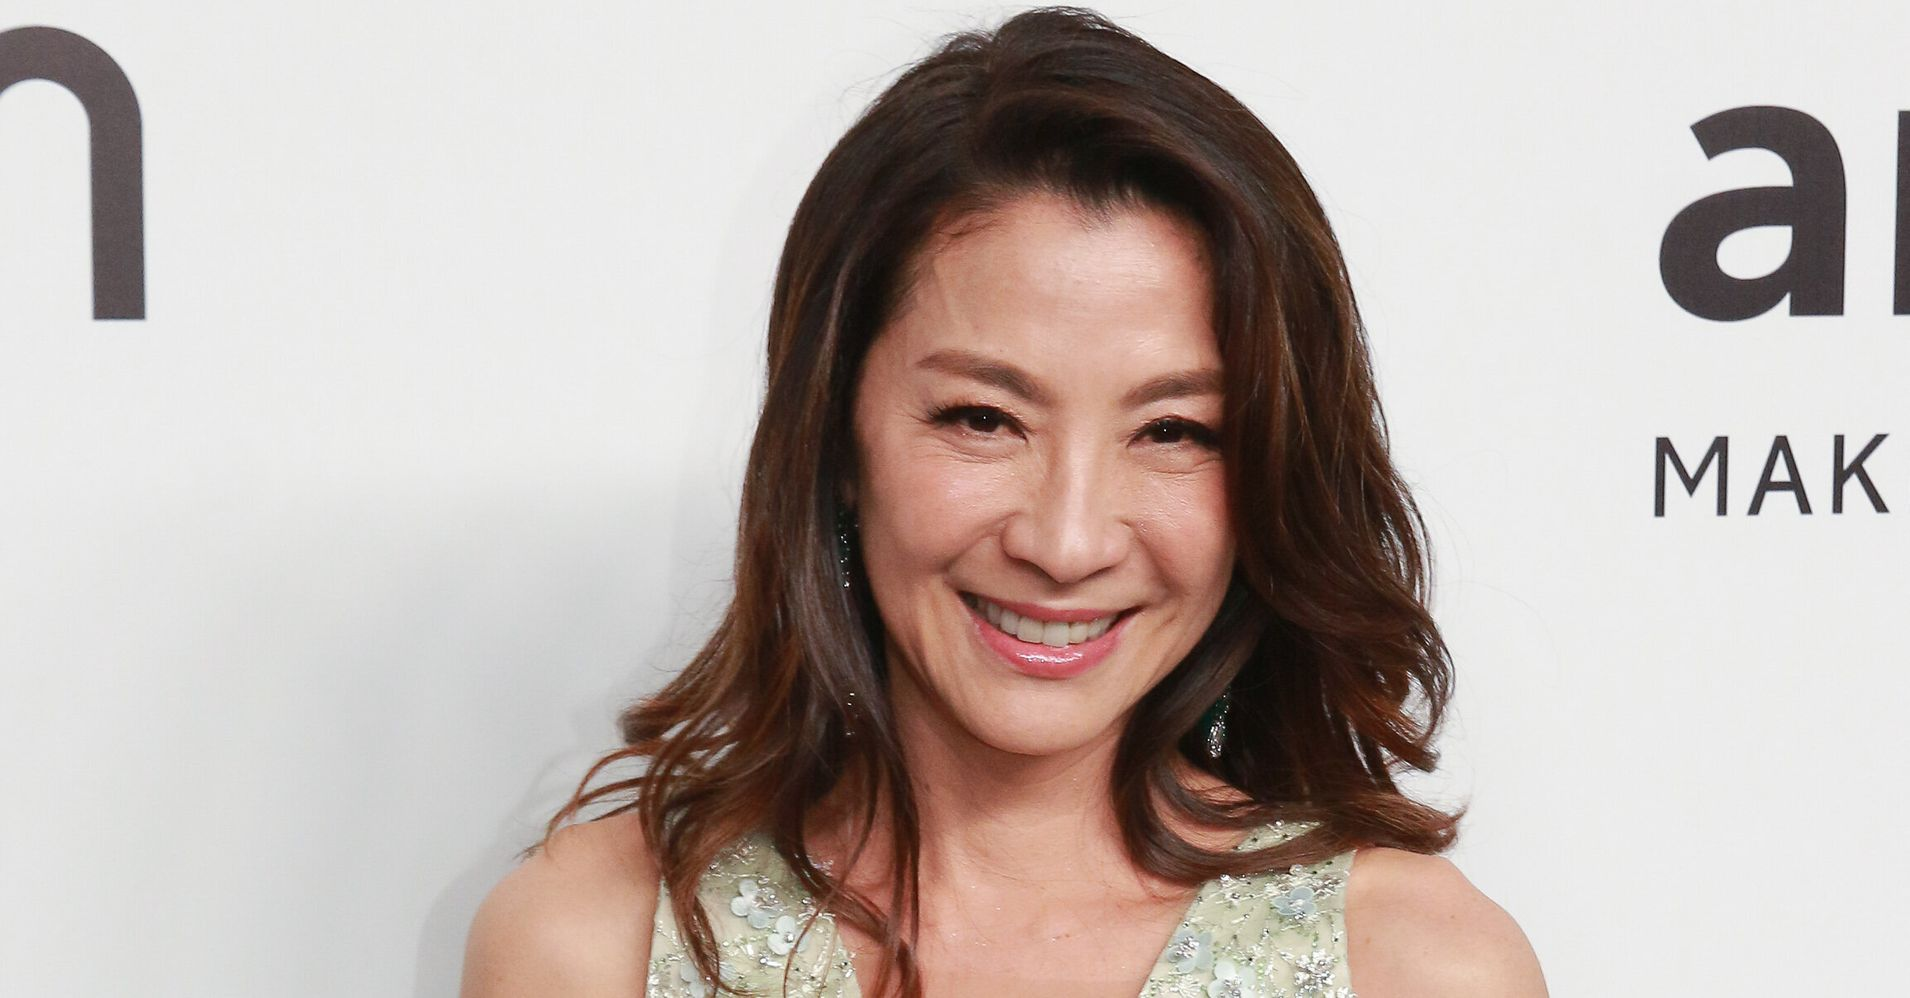 Michelle Yeoh Tells Lena Headey To 'F**k Off' In Hilarious Video